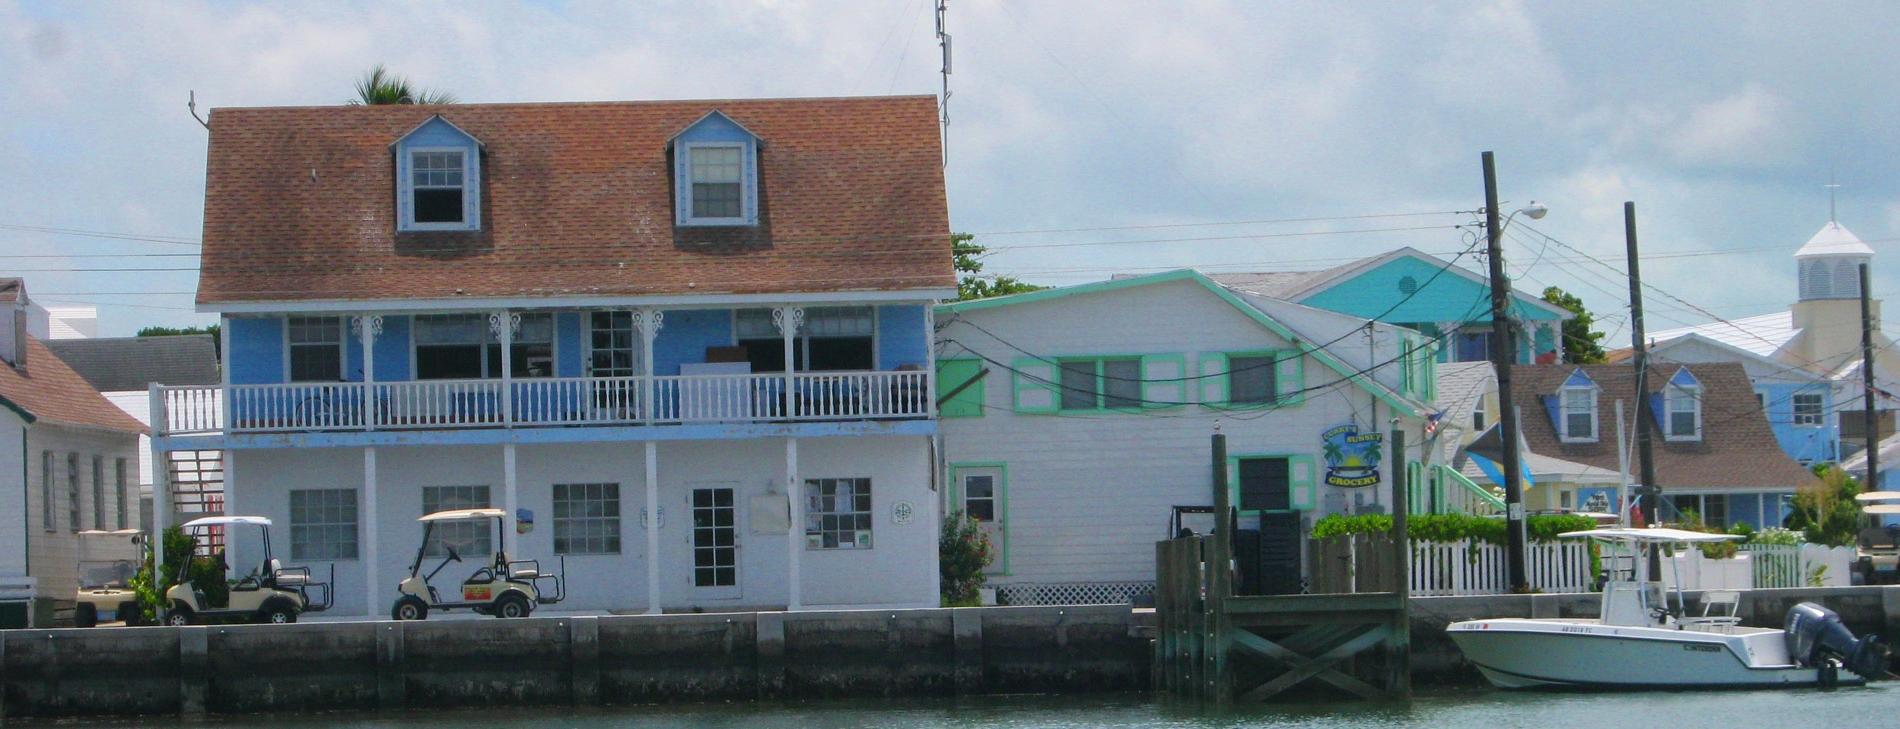 House rentals green turtle cay - Flight